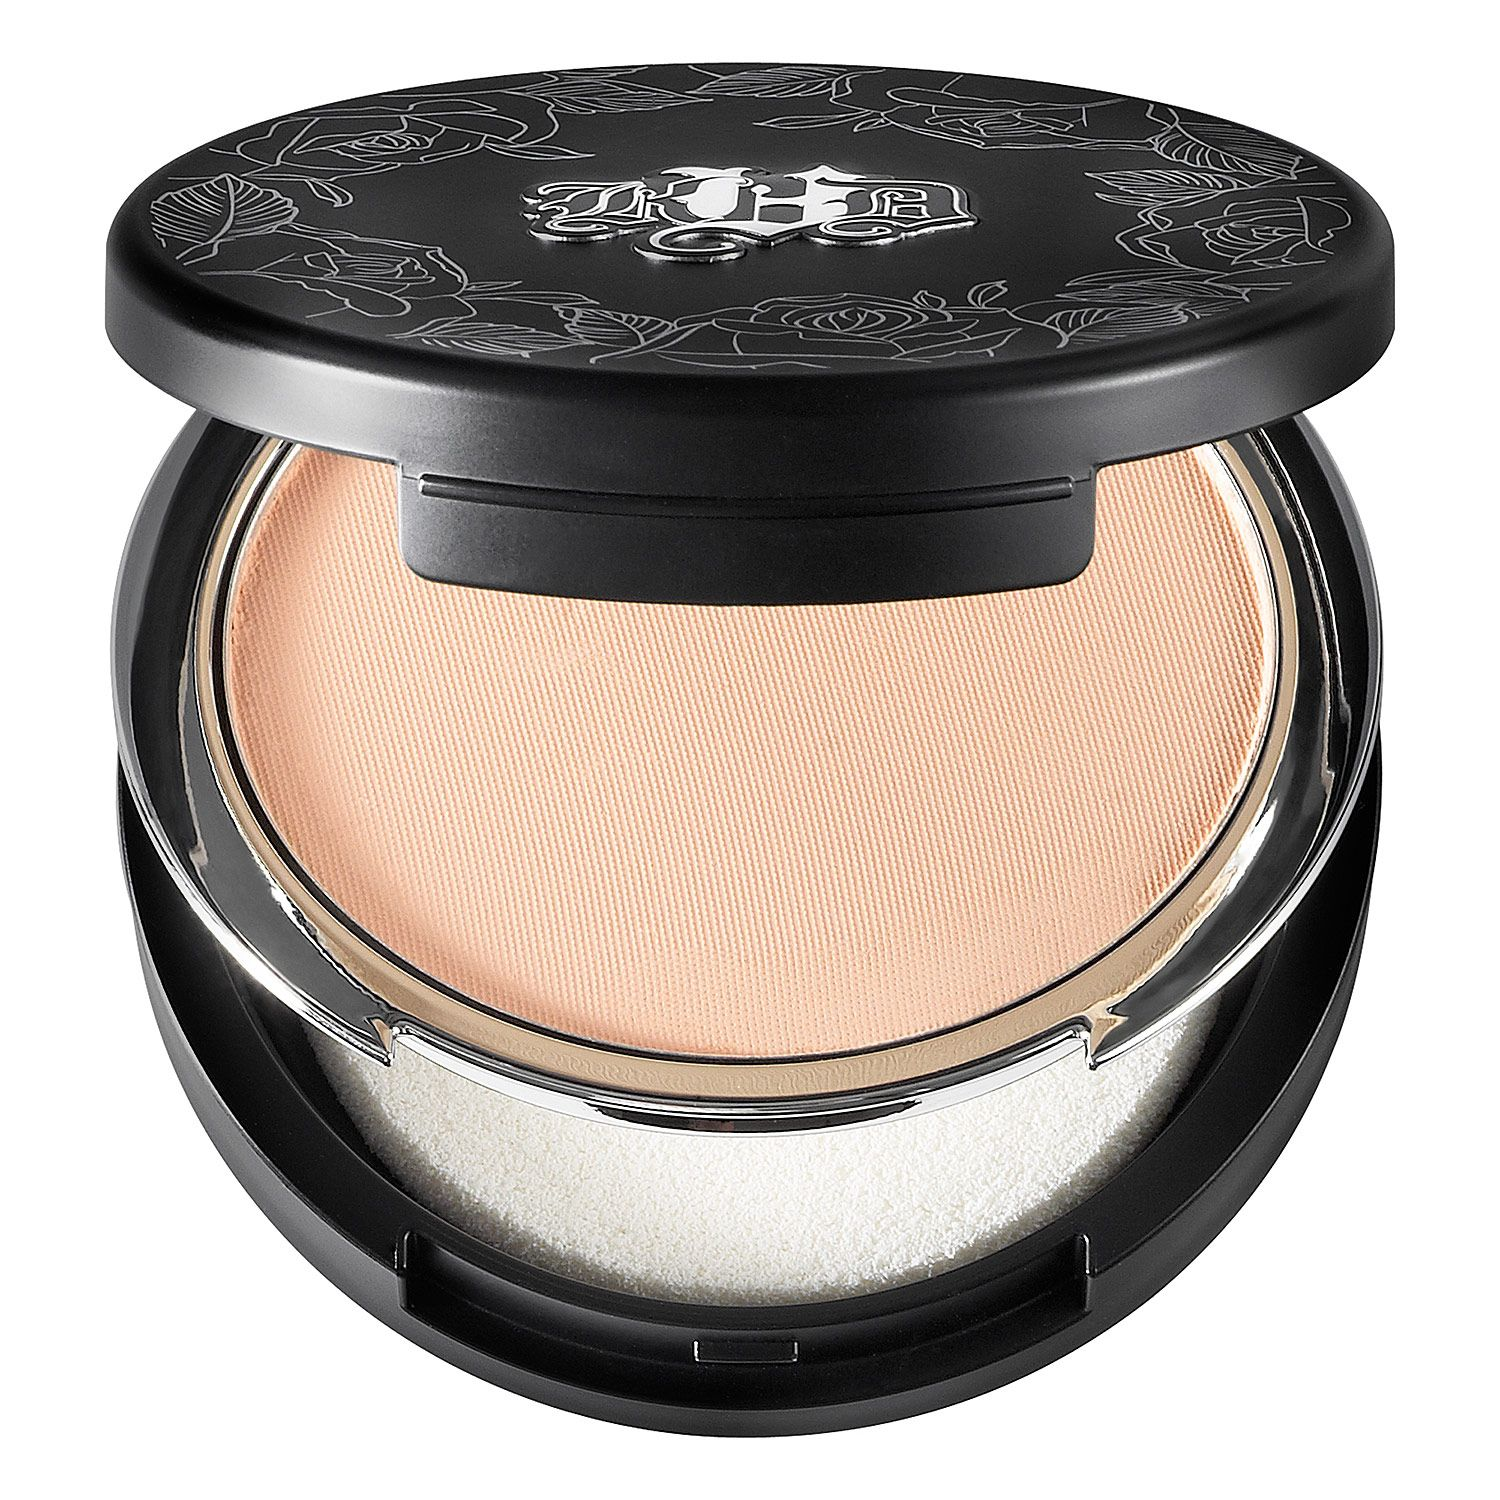 Shop Kat Von D's LockIt Powder Foundation at Sephora